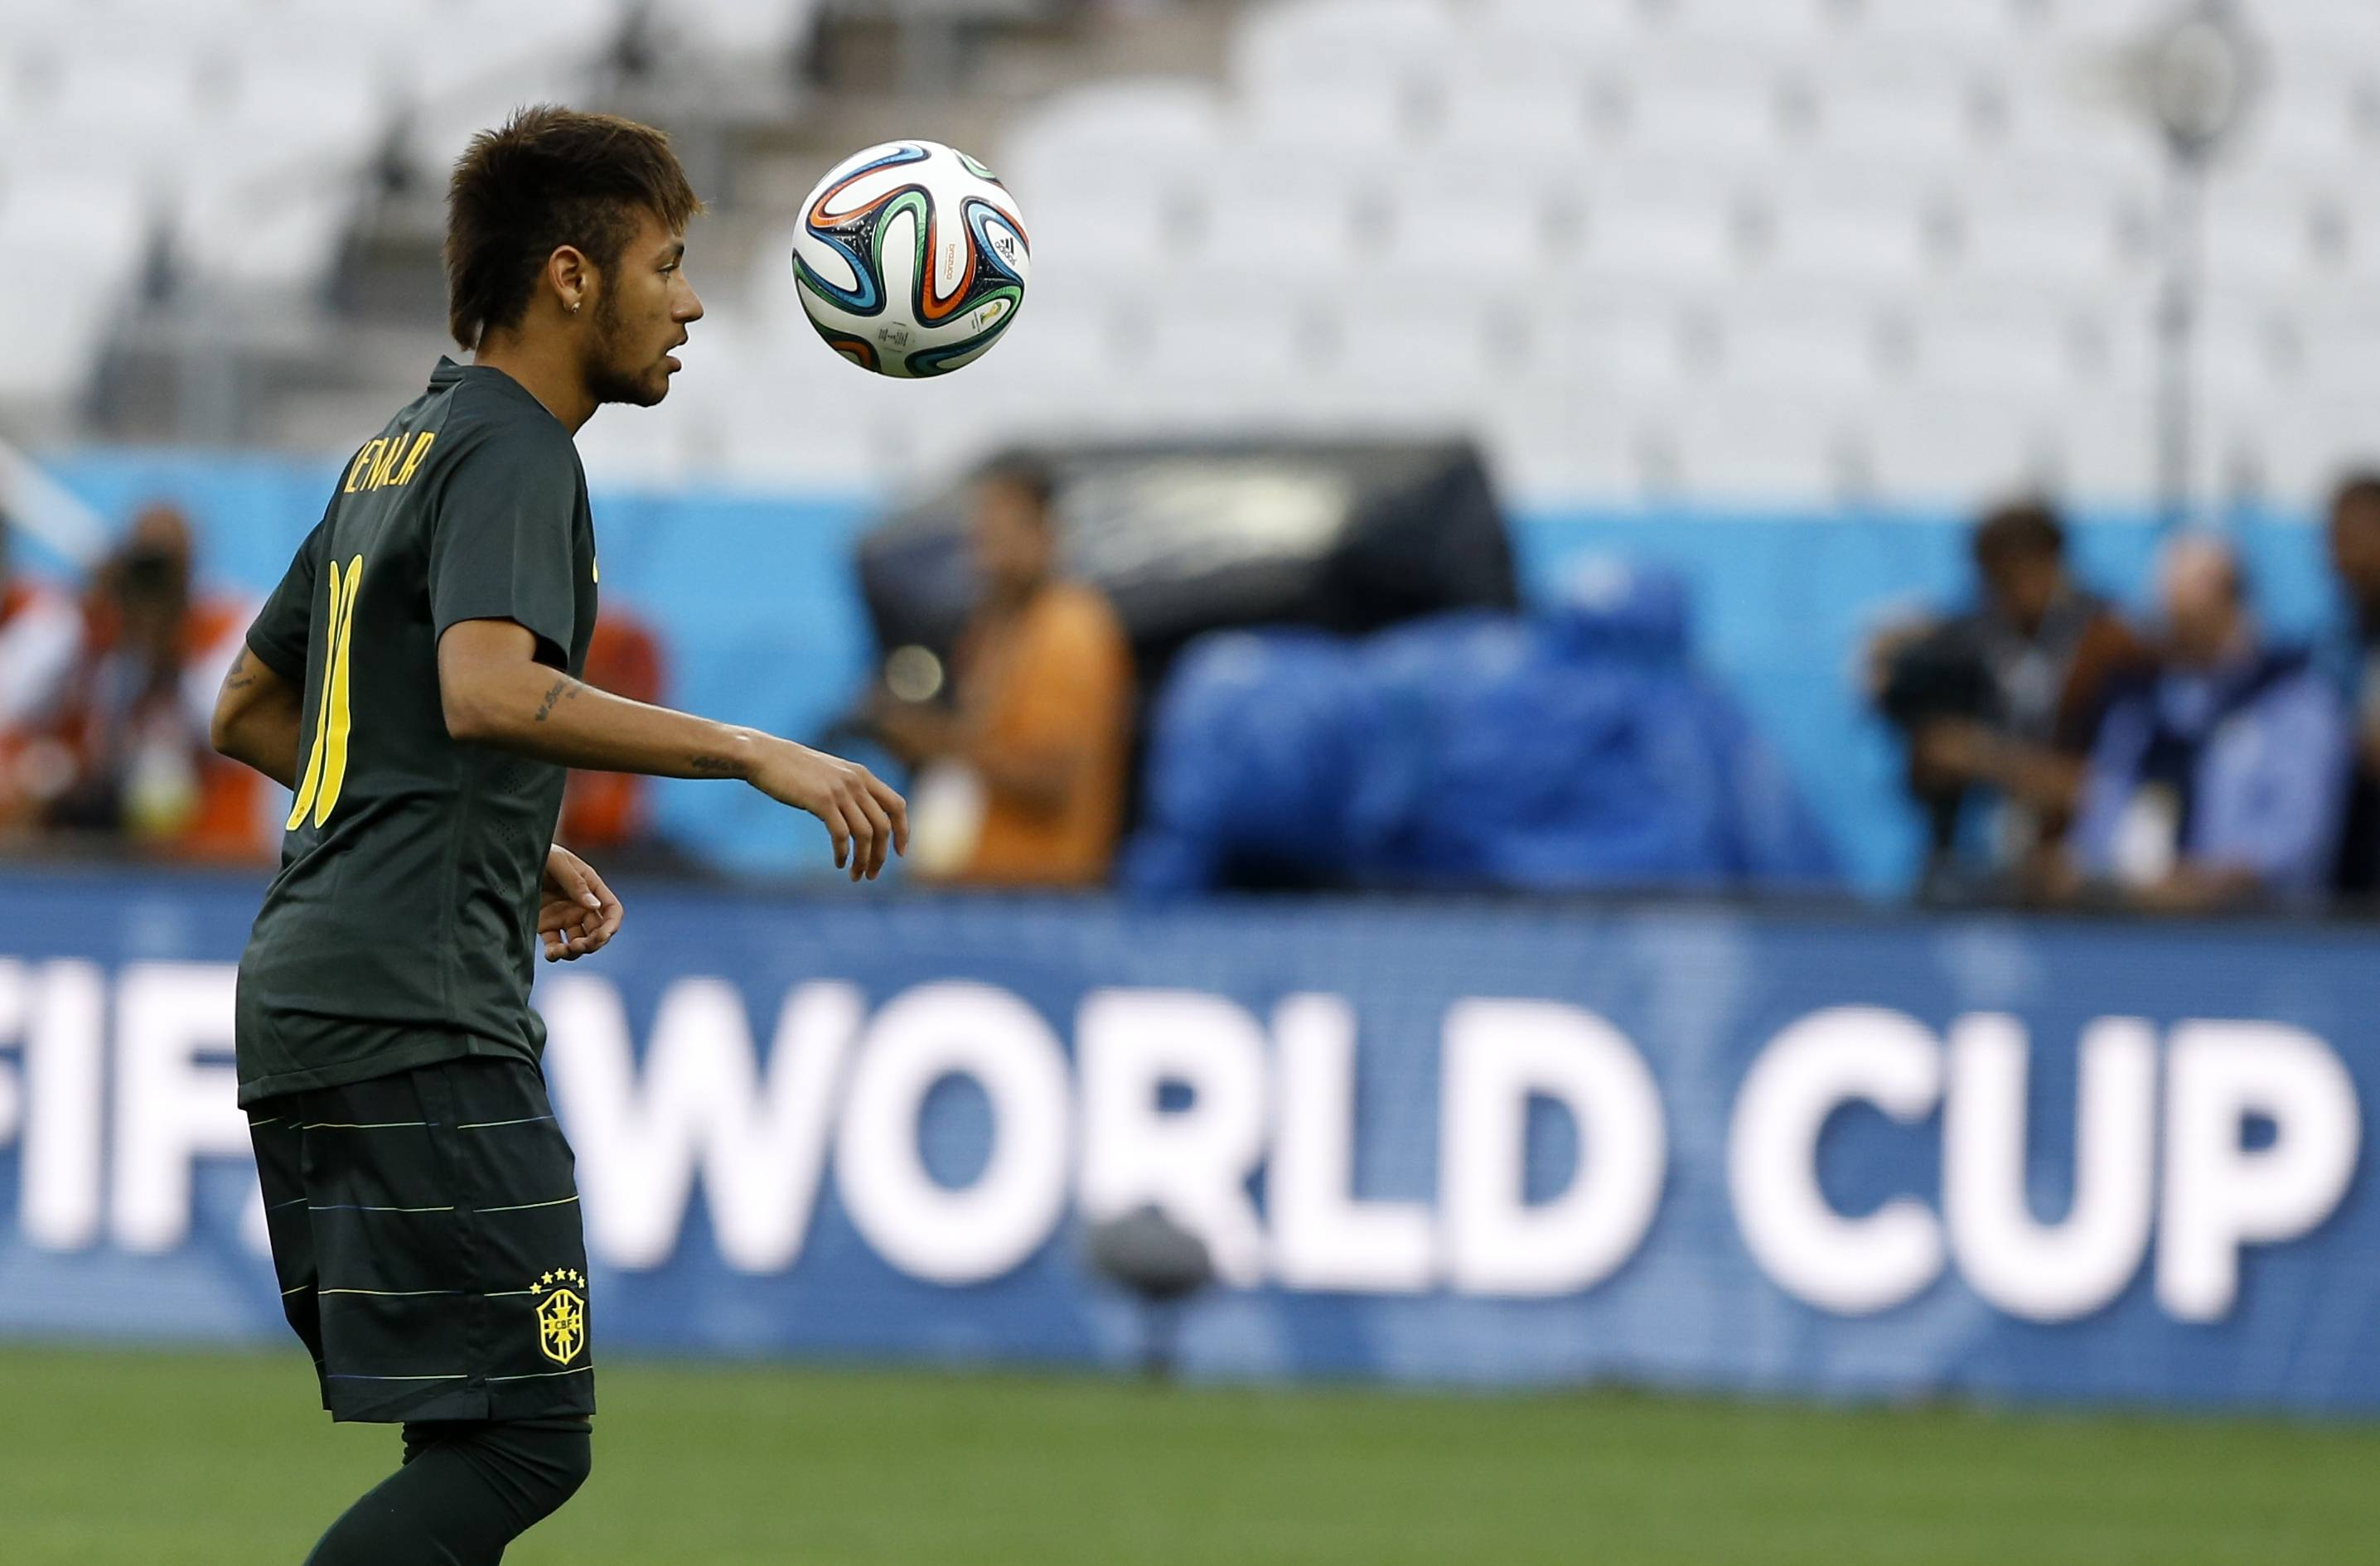 Brazil's Neymar plays with the ball during an official training session Wednesday the day before the group A World Cup soccer match between Brazil and Croatia in the Itaquerao Stadium in Sao Paulo, Brazil.